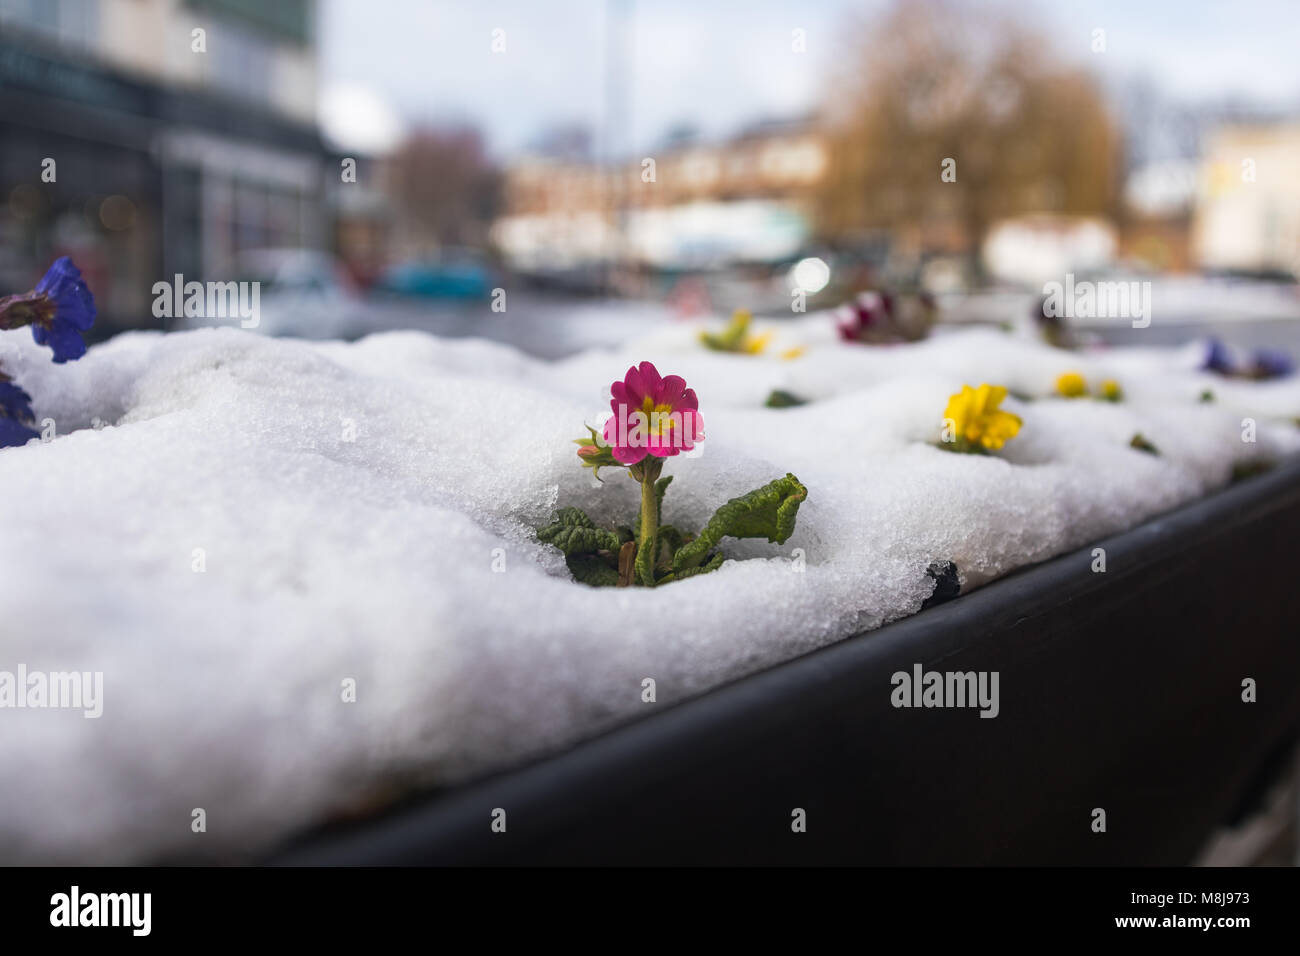 A confused flower - Stock Image